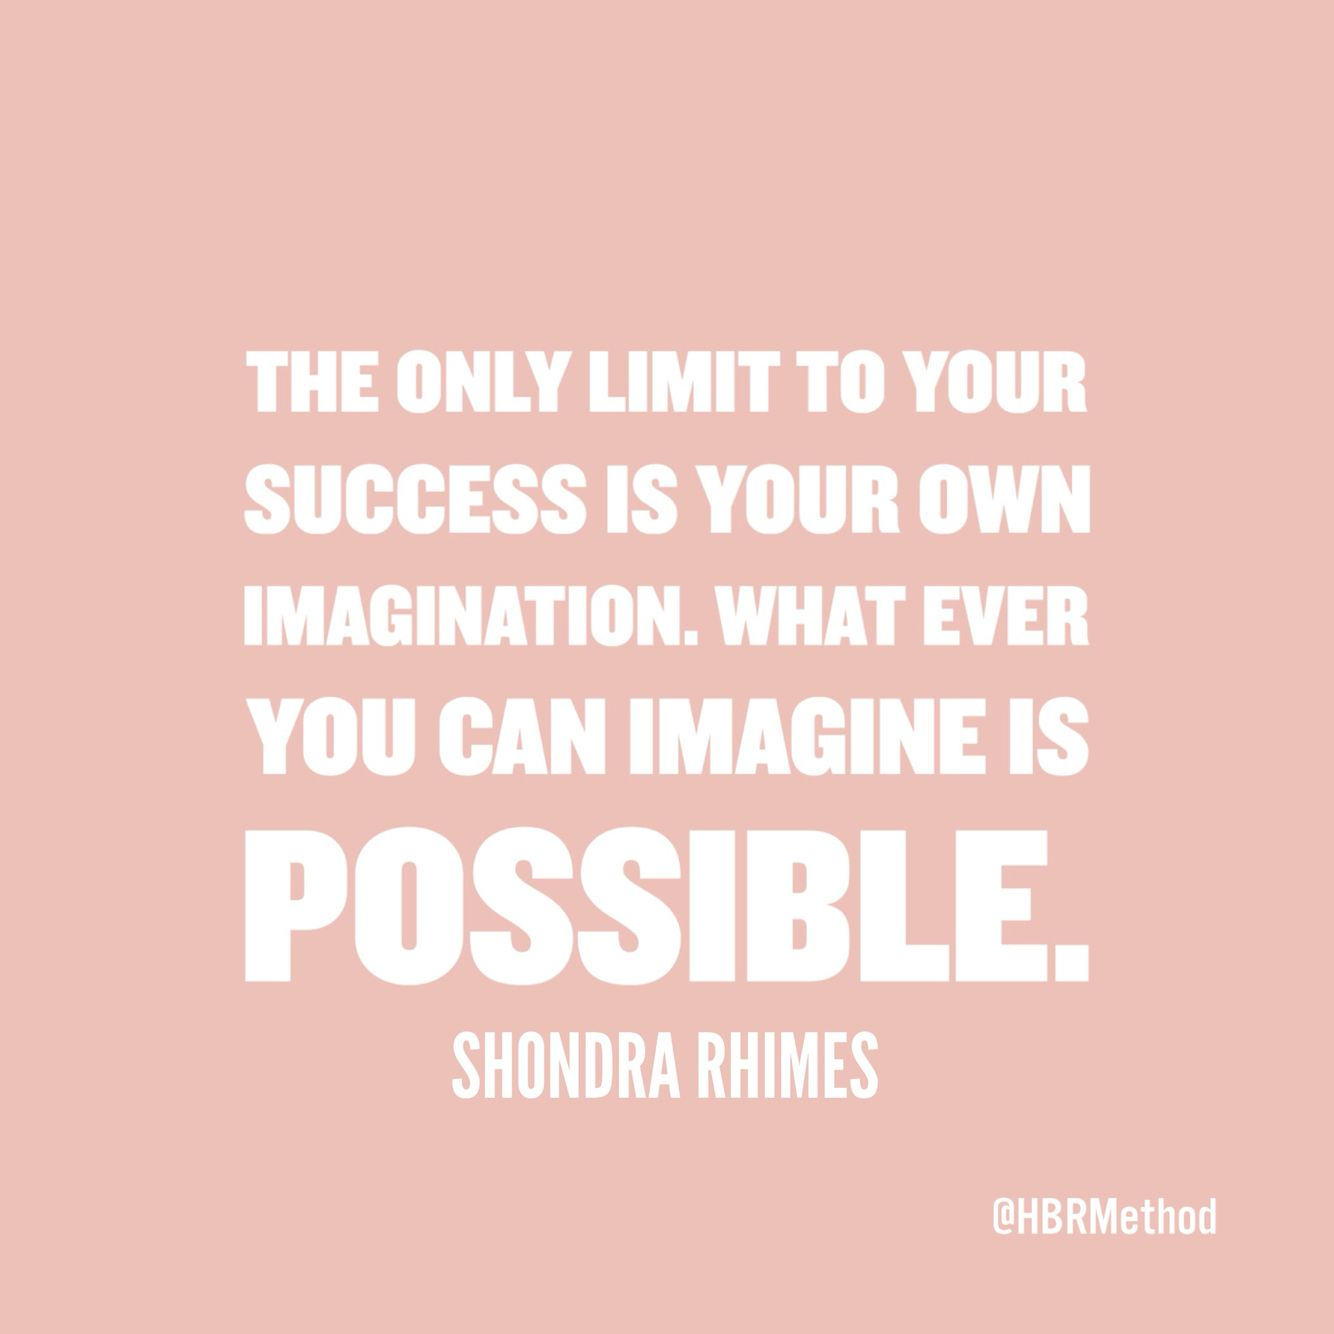 25d16f62b The only limit to your success is your own imagination. Motivational ...